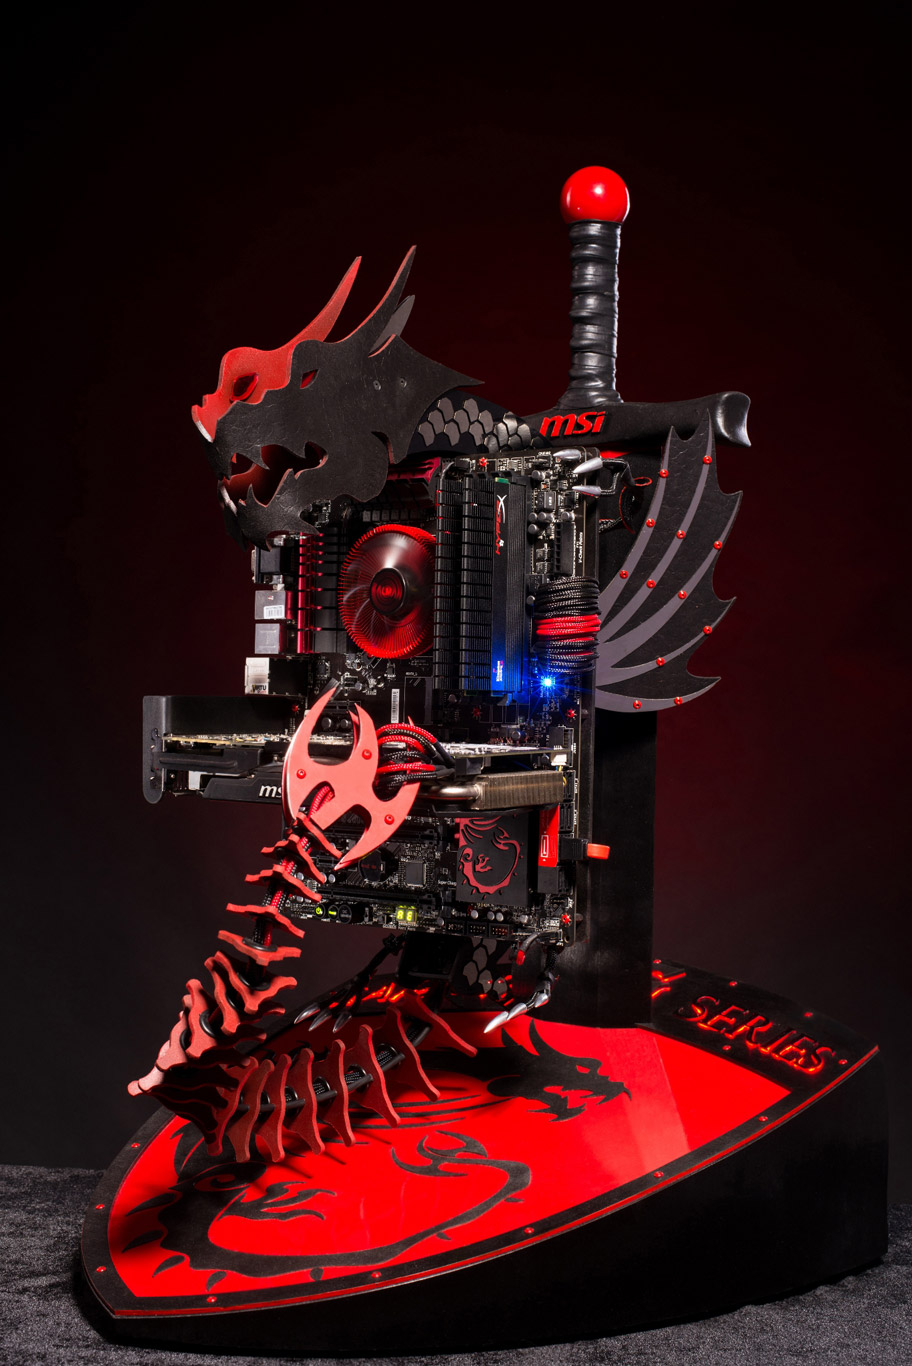 Msi wallpapers and background - Un Mod Msi Dragon Modding Fr